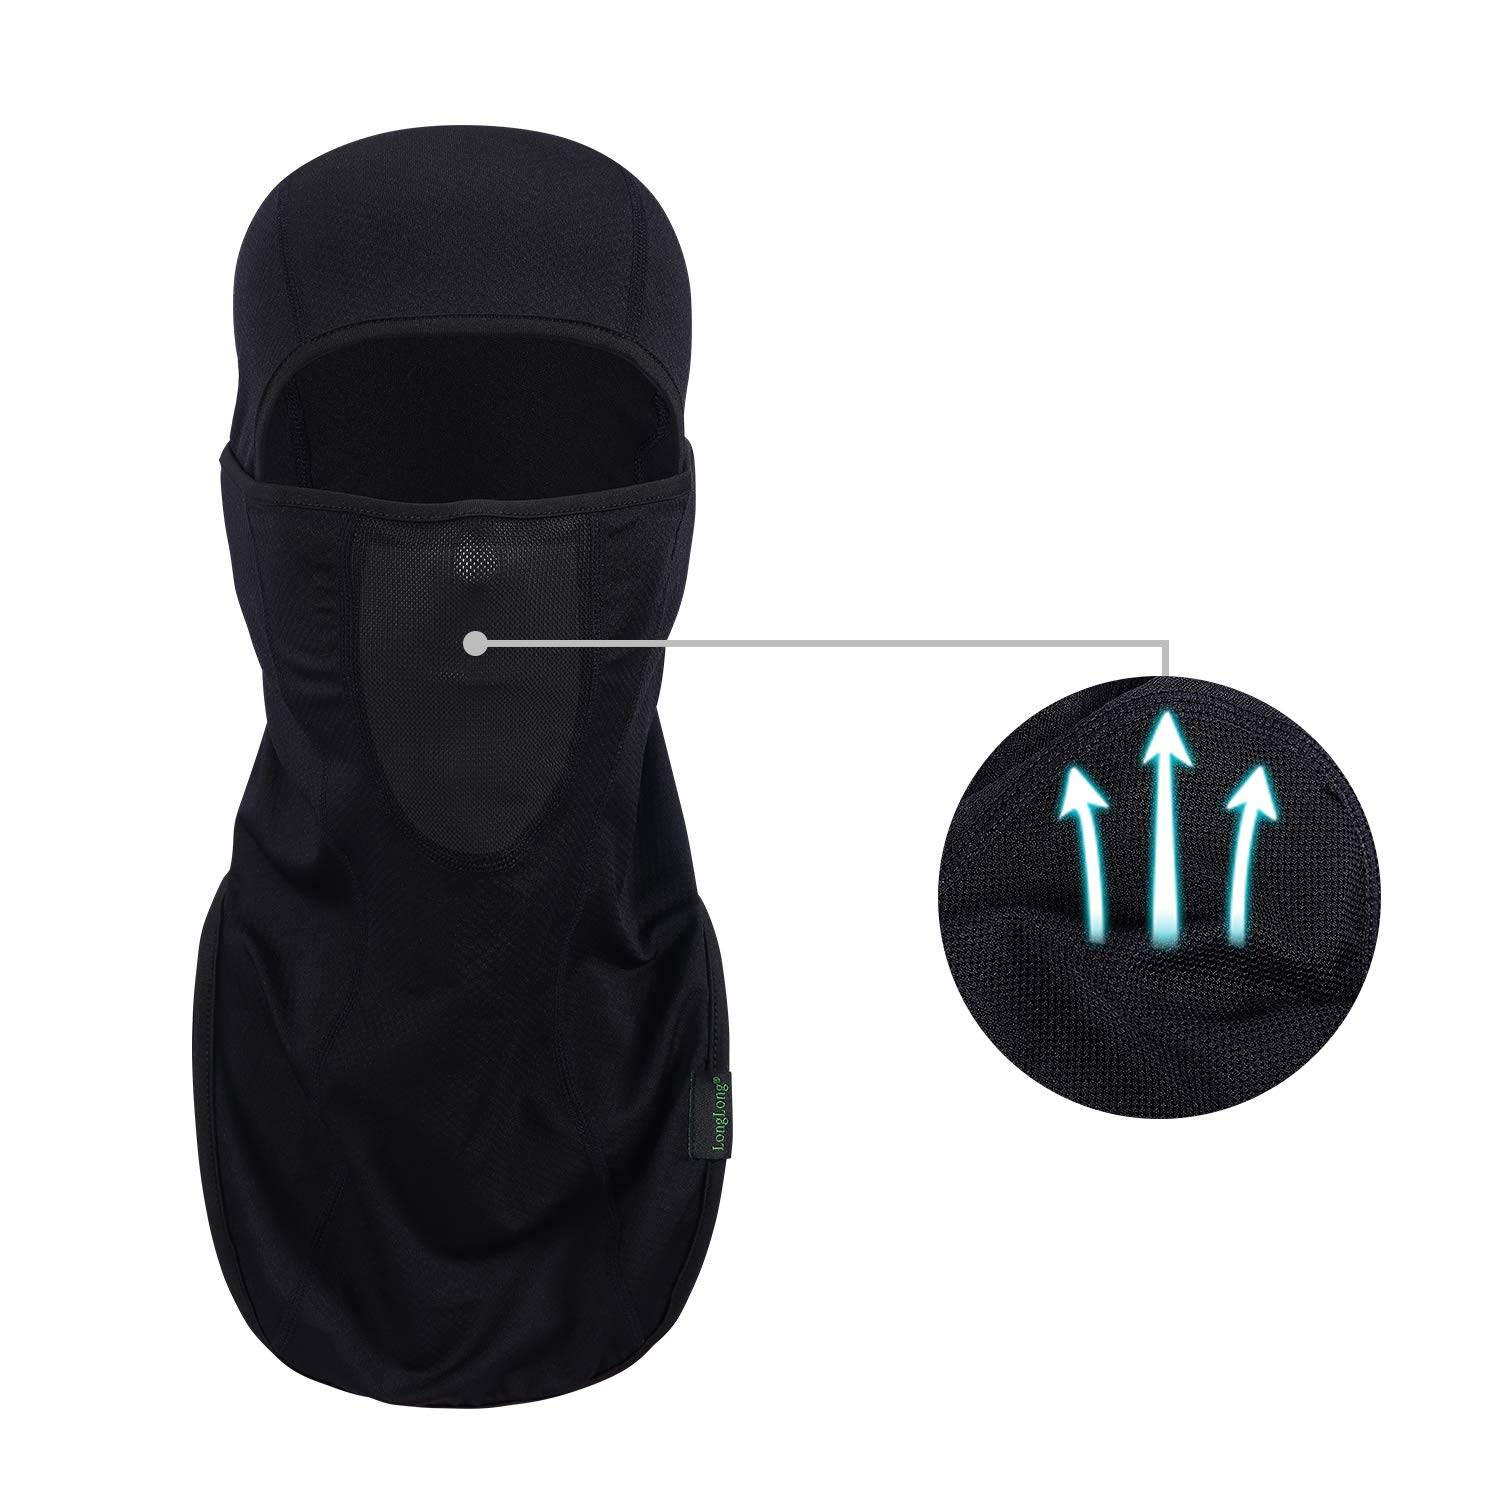 LONGLONG Balaclava - Sun Protection Mask Windproof, Dust & Breathable Summer Full Face Cover for Cycling, Hiking, Motorcycle (Black)